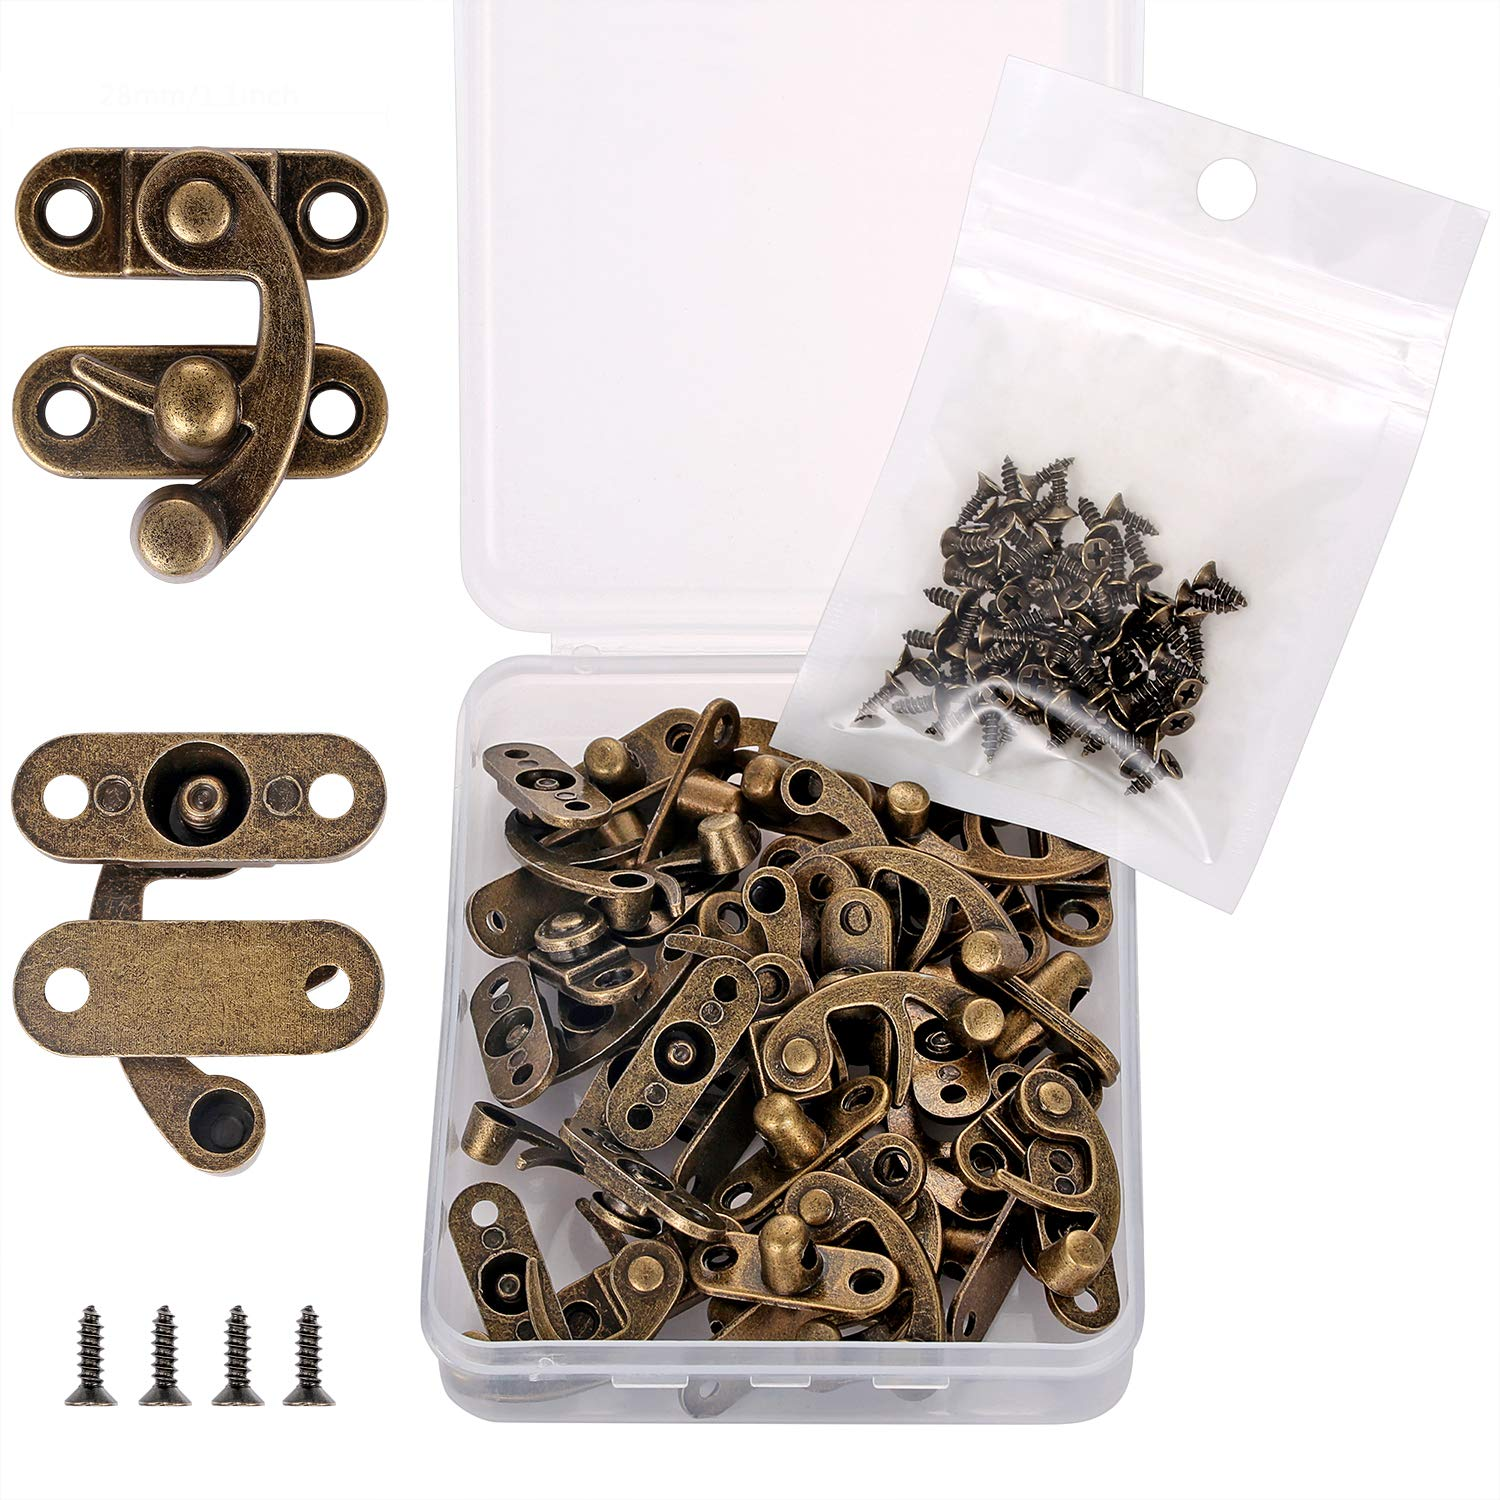 PGMJ 20 Pieces Thickened Solid Bronze Tone Antique Right Latch Hook Hasp Horn Lock Wood Jewelry Box Latch Hook Clasp and 80 Replacement Screws (Right Latch Buckle) by PGMJ